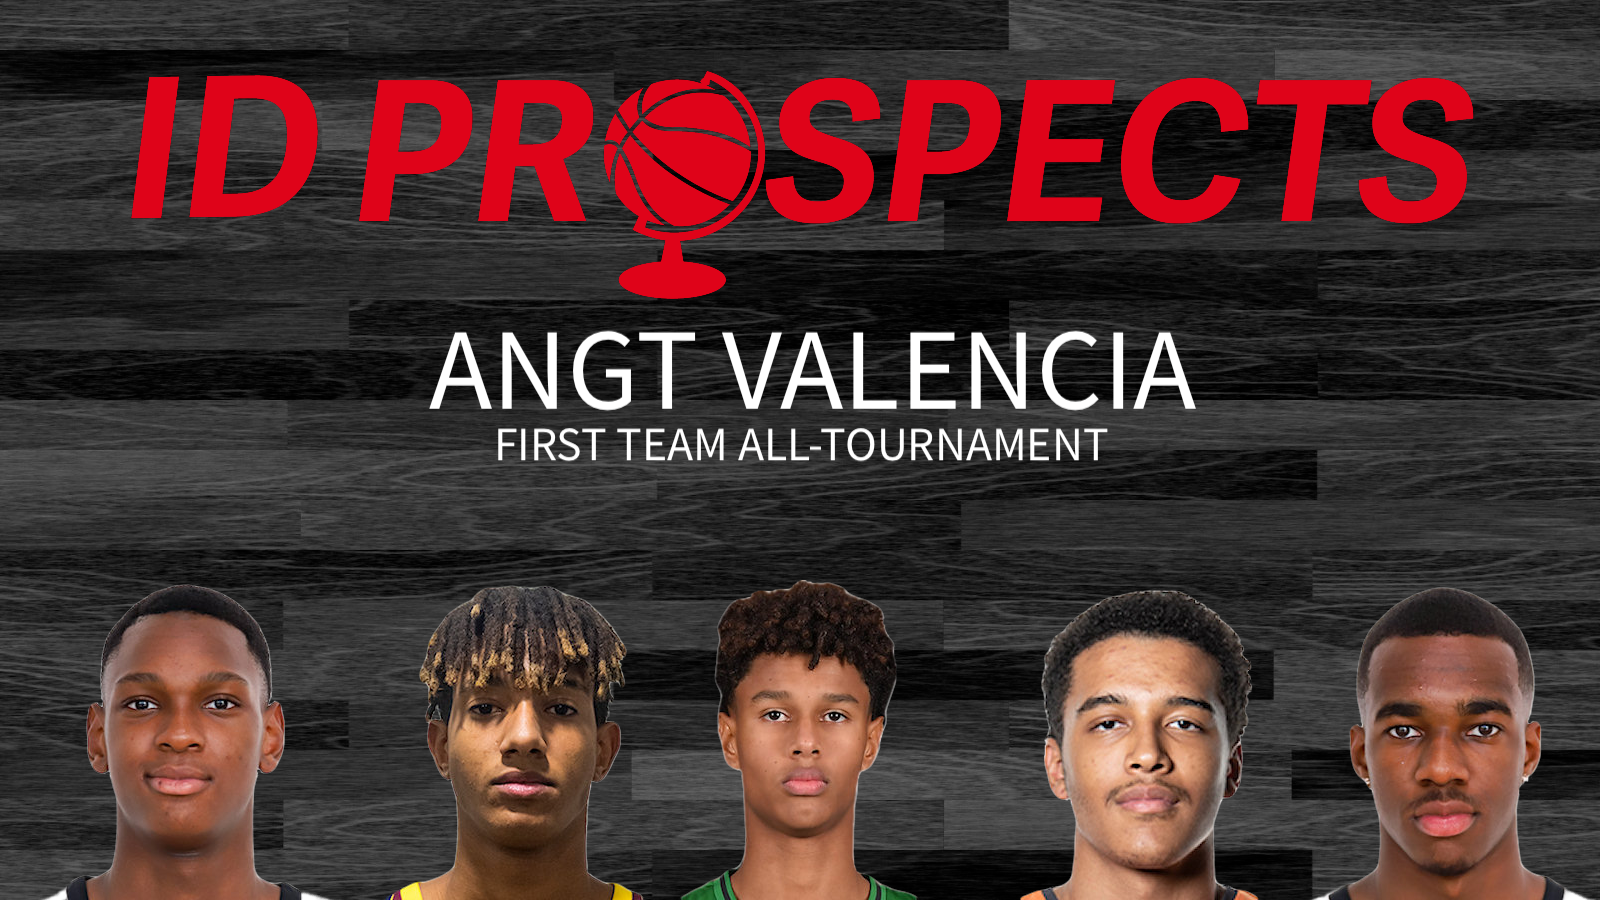 https://id-prospects.com/id-prospects-awards-angt-valencia-2020/